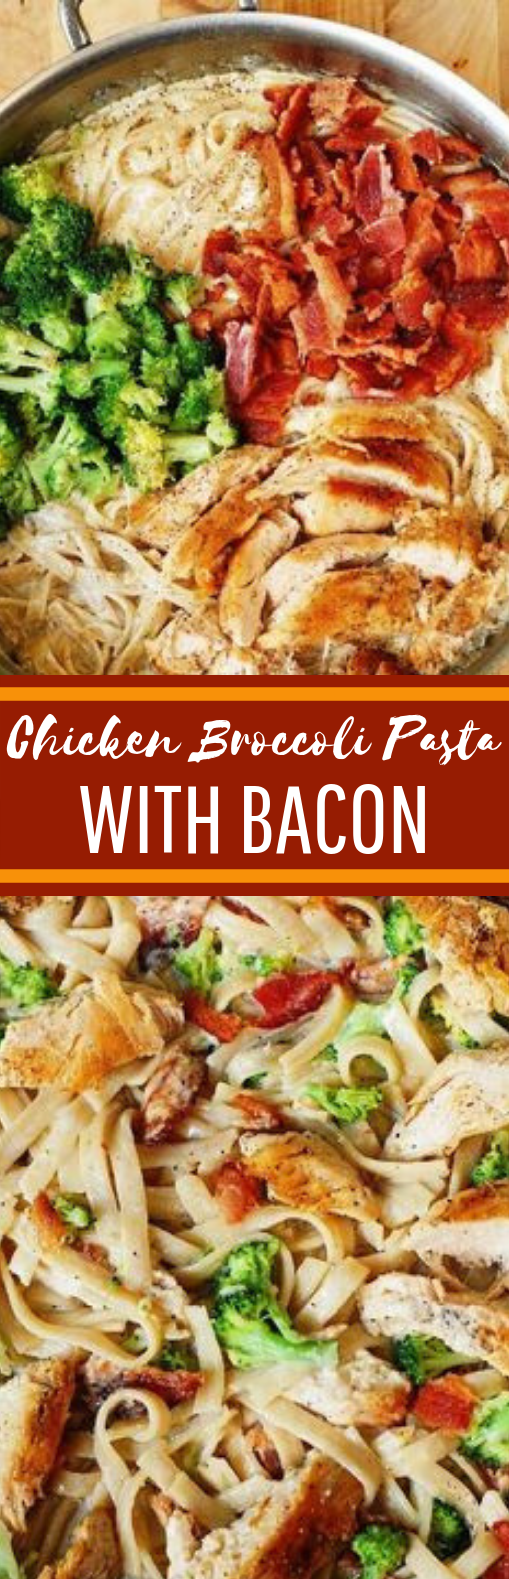 Chicken Broccoli Pasta with Bacon #dinner #pasta